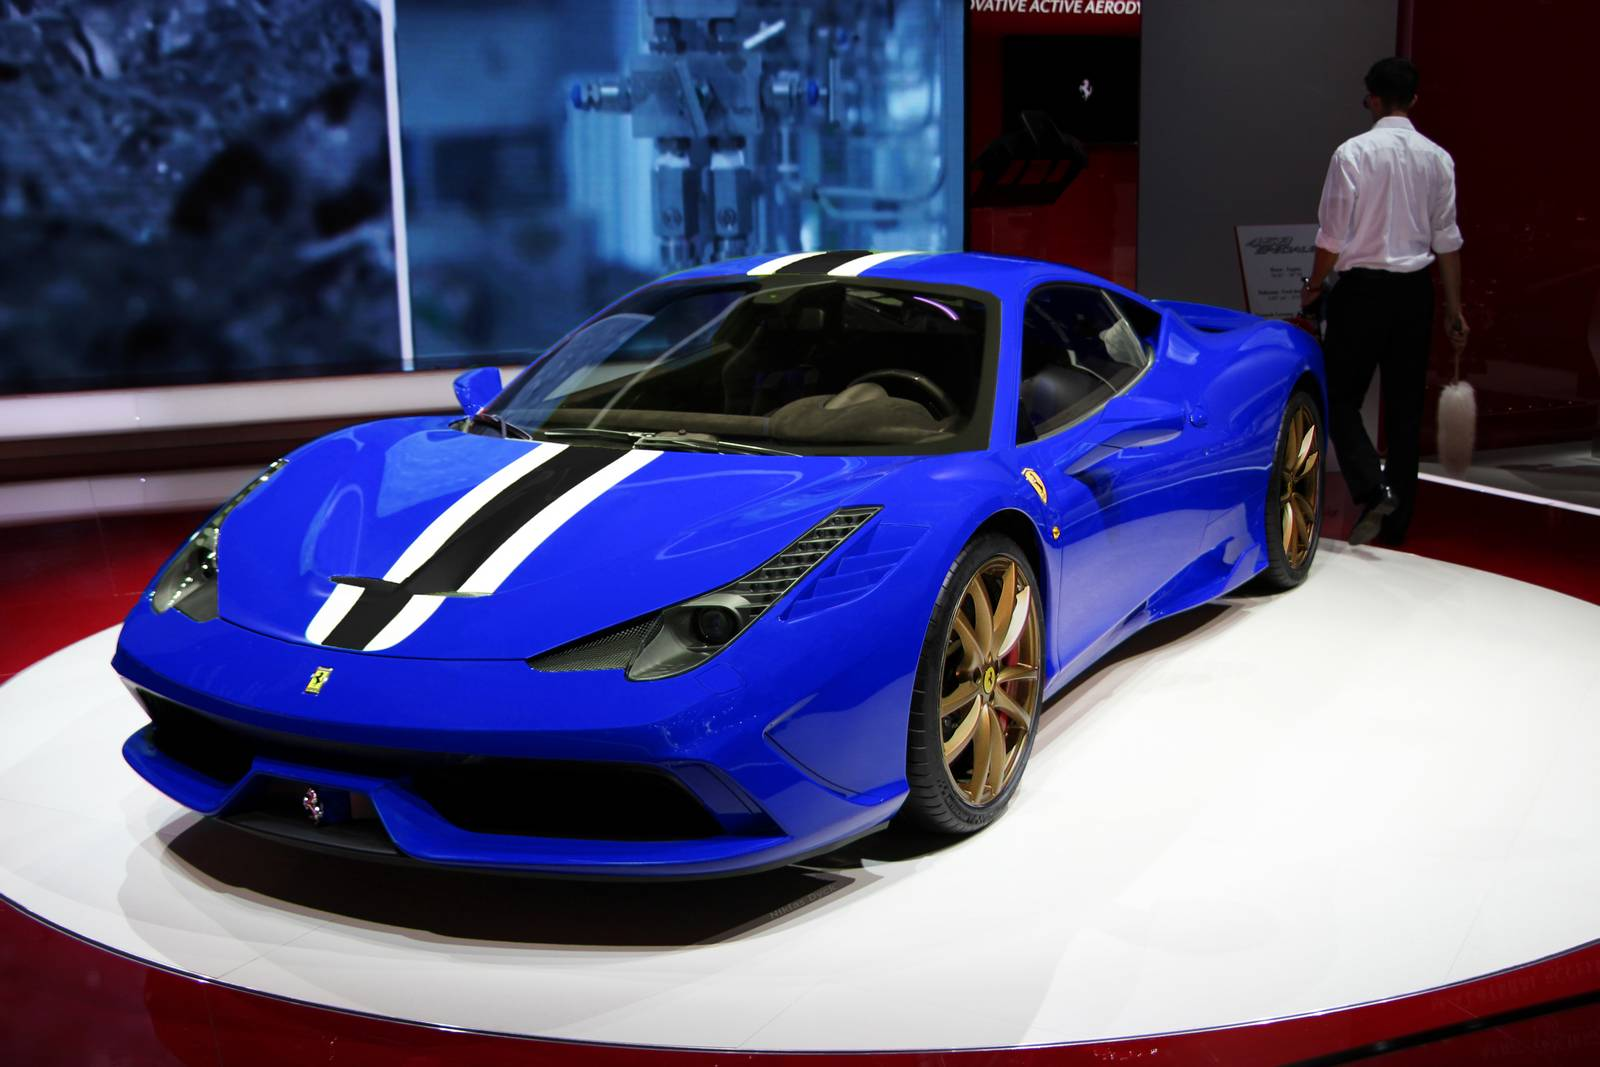 ferrari 458 speciale rendered in blue with gold wheels - Ferrari 458 Blue And White